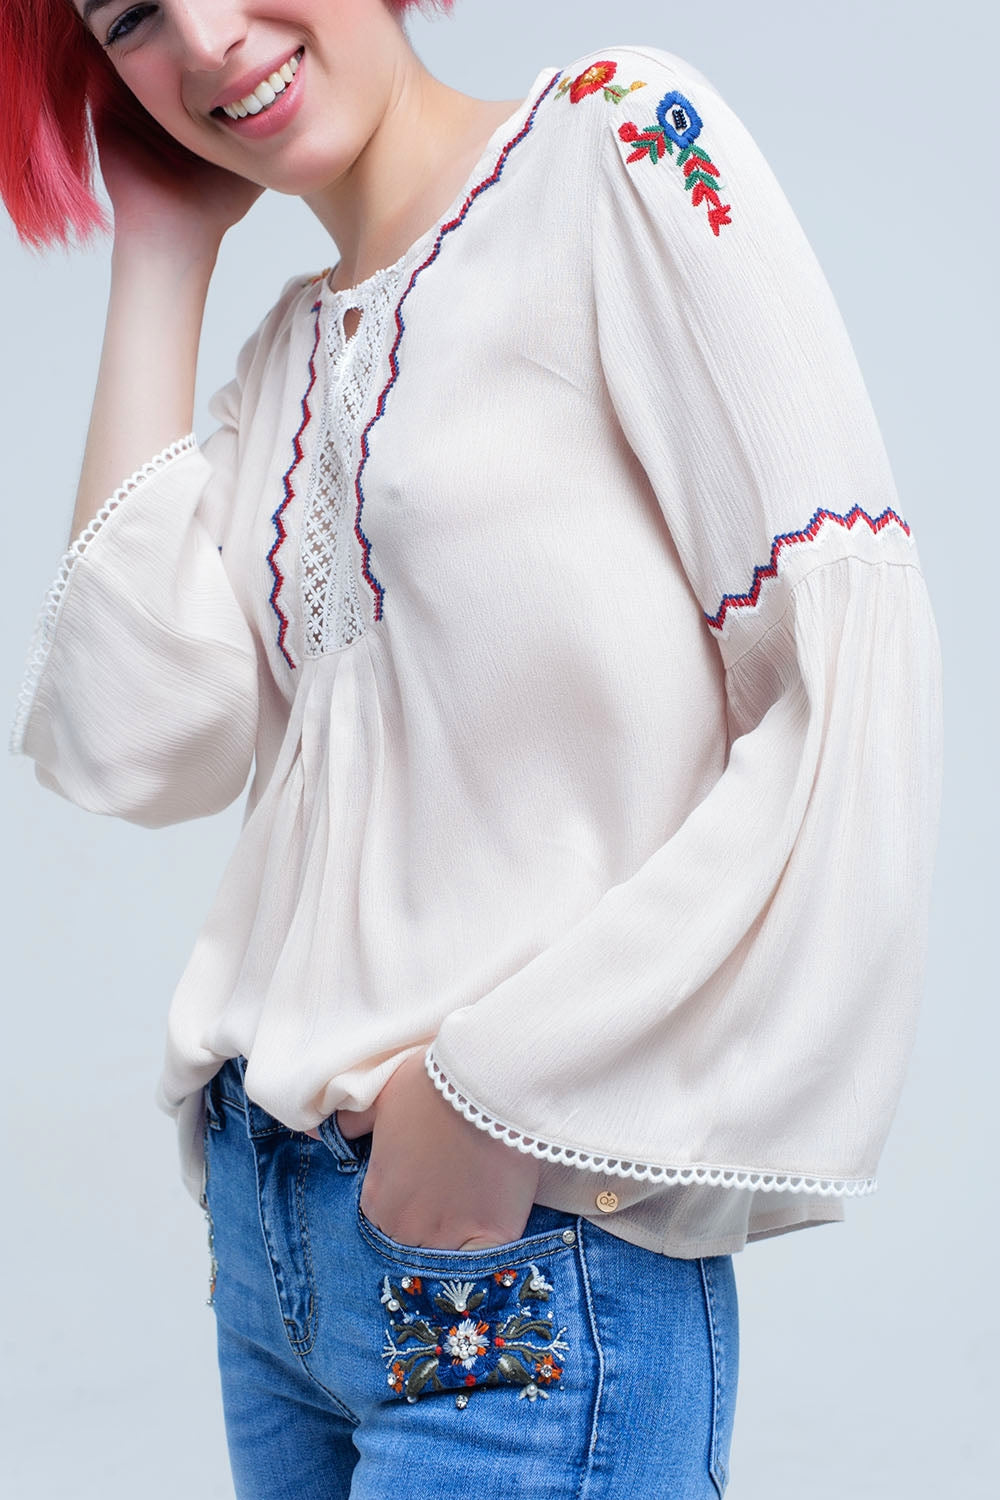 Beige Top With Embroidered Flowers And Lace-Women - Apparel - Shirts - Blouses-Product Details Loose beige top with embroidered flowers and detail of white lace with buttons. Long sleeves flared and crew neck. Very fine and flowing fabric.-Keyomi-Sook